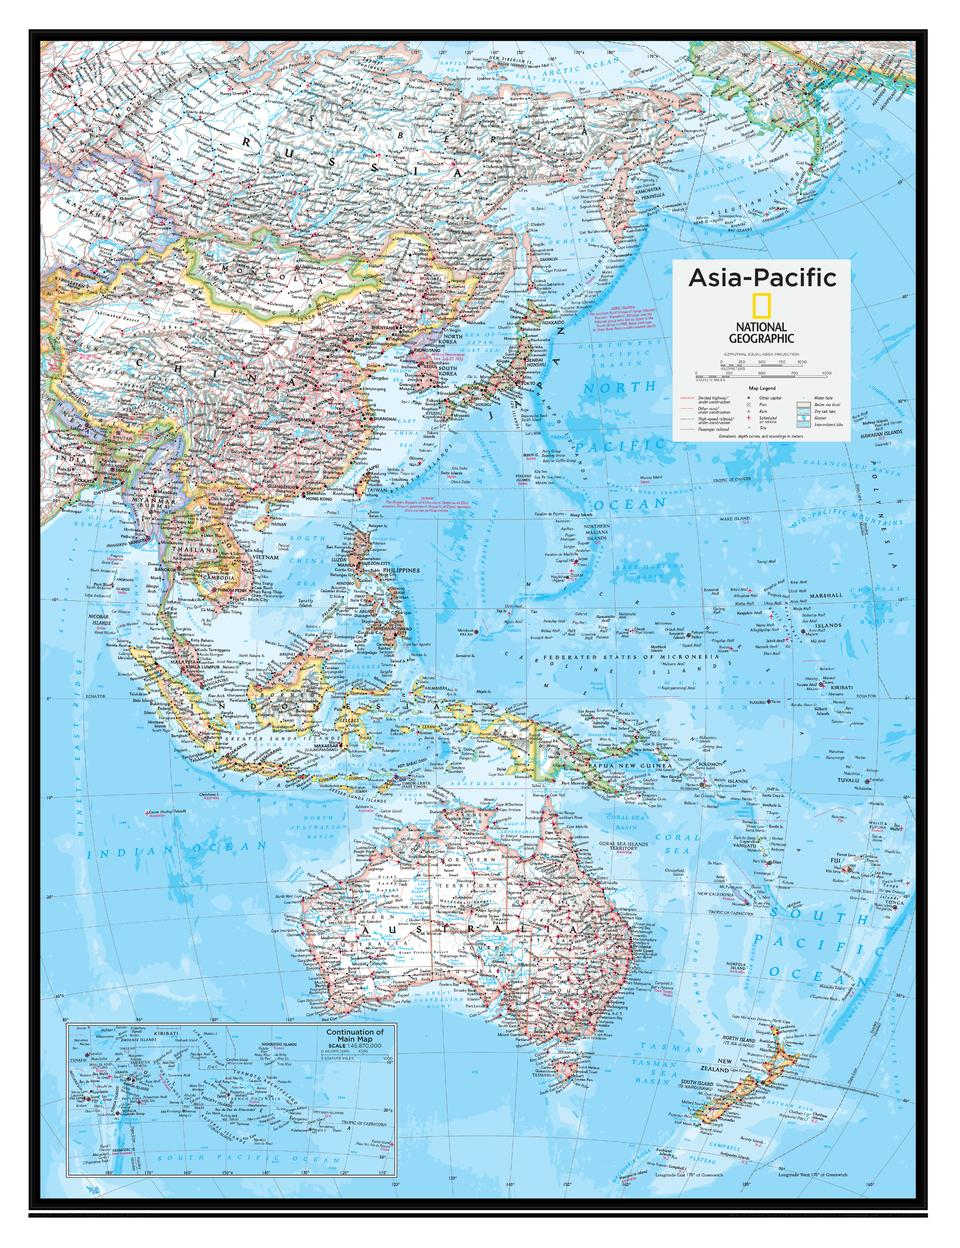 Asia Pacific Atlas Of The World 10th Edition